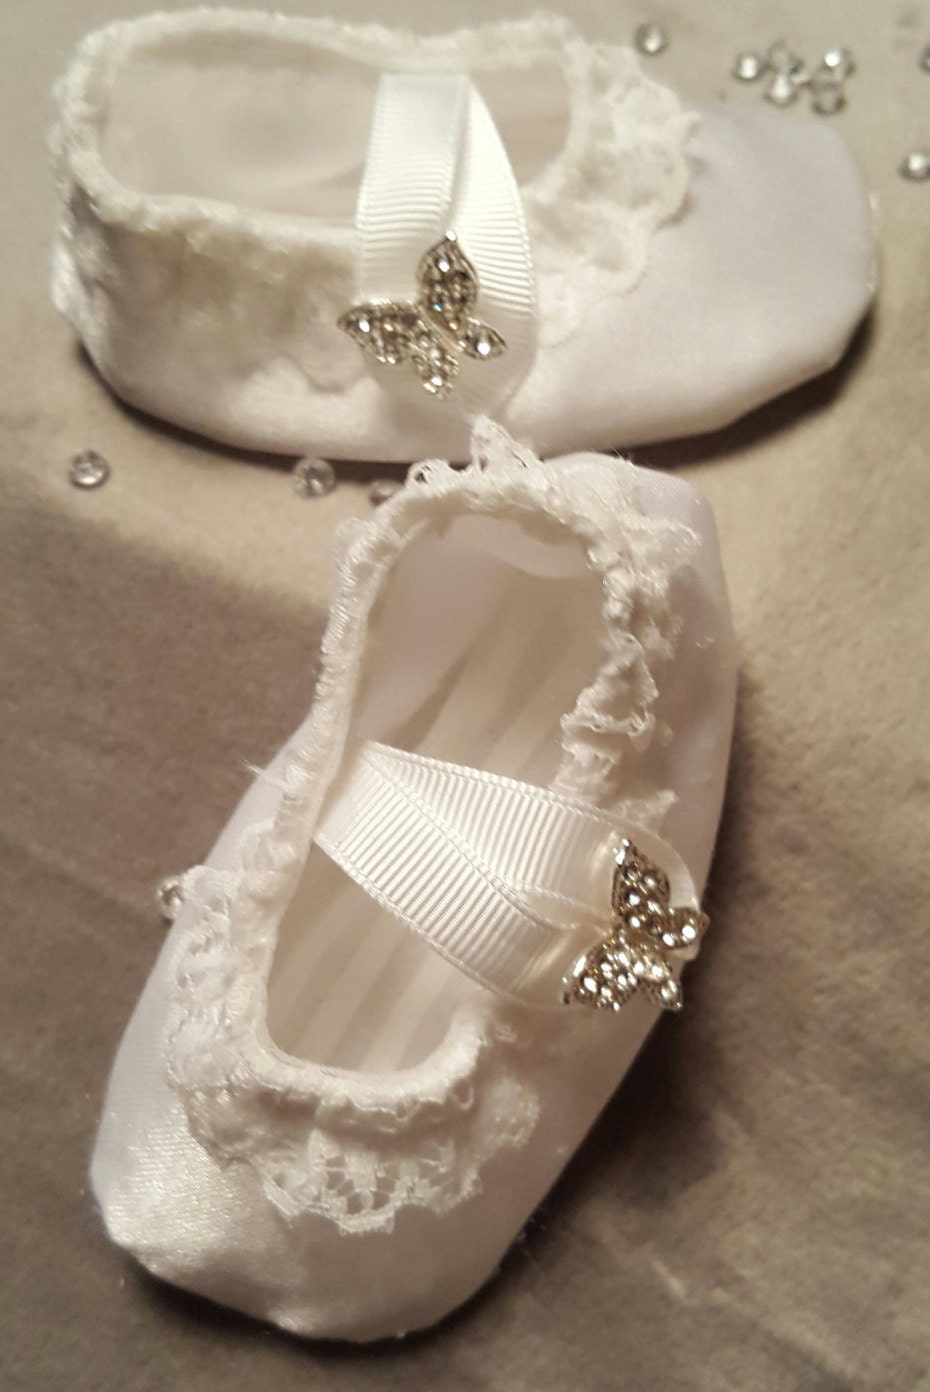 reborn baby shoes white satin with butterfly